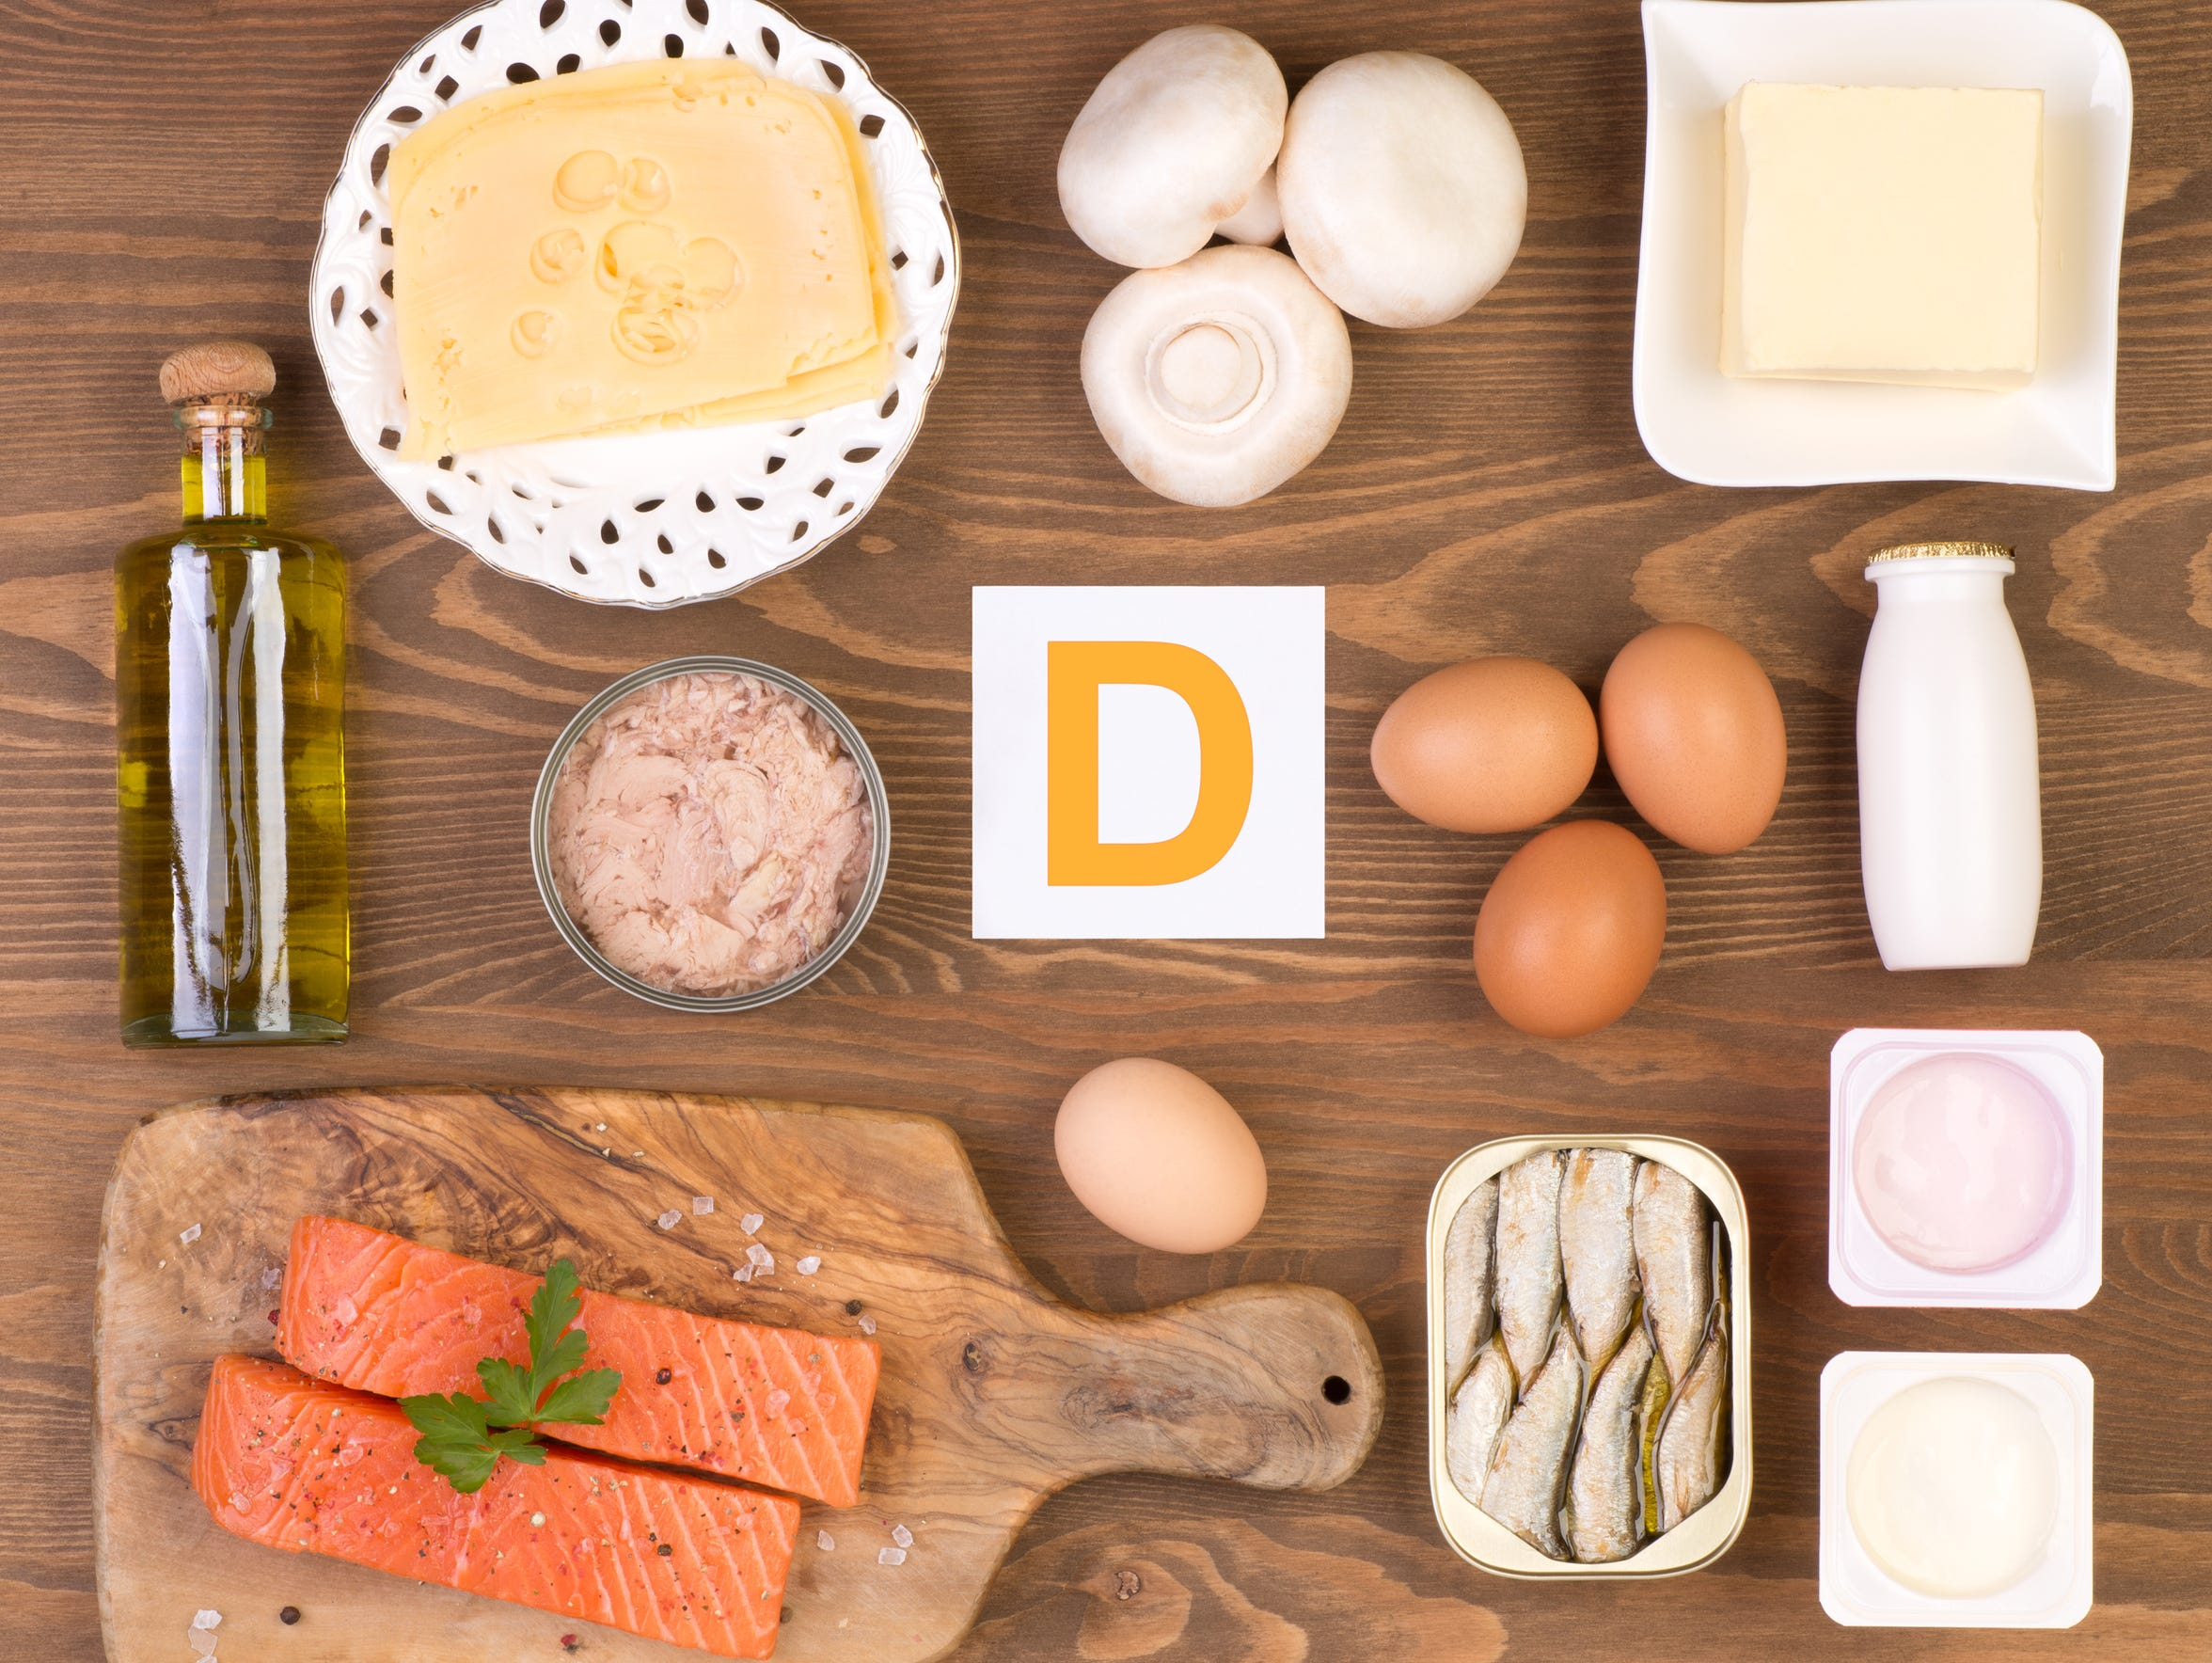 Vitamin D containing foods such as fatty fish, egg